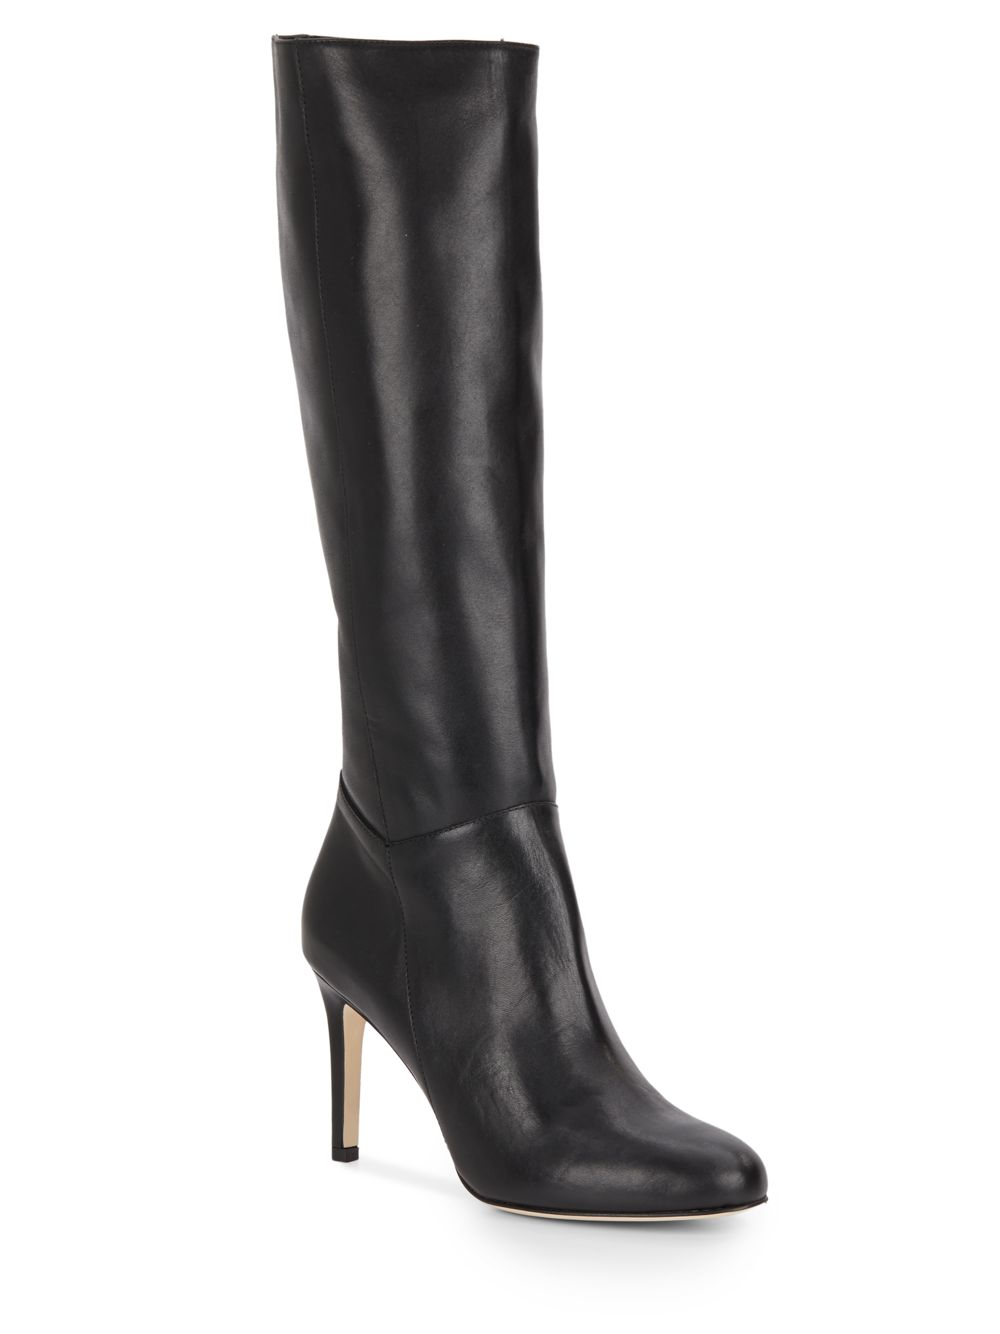 saks fifth avenue side zip leather knee high boots in